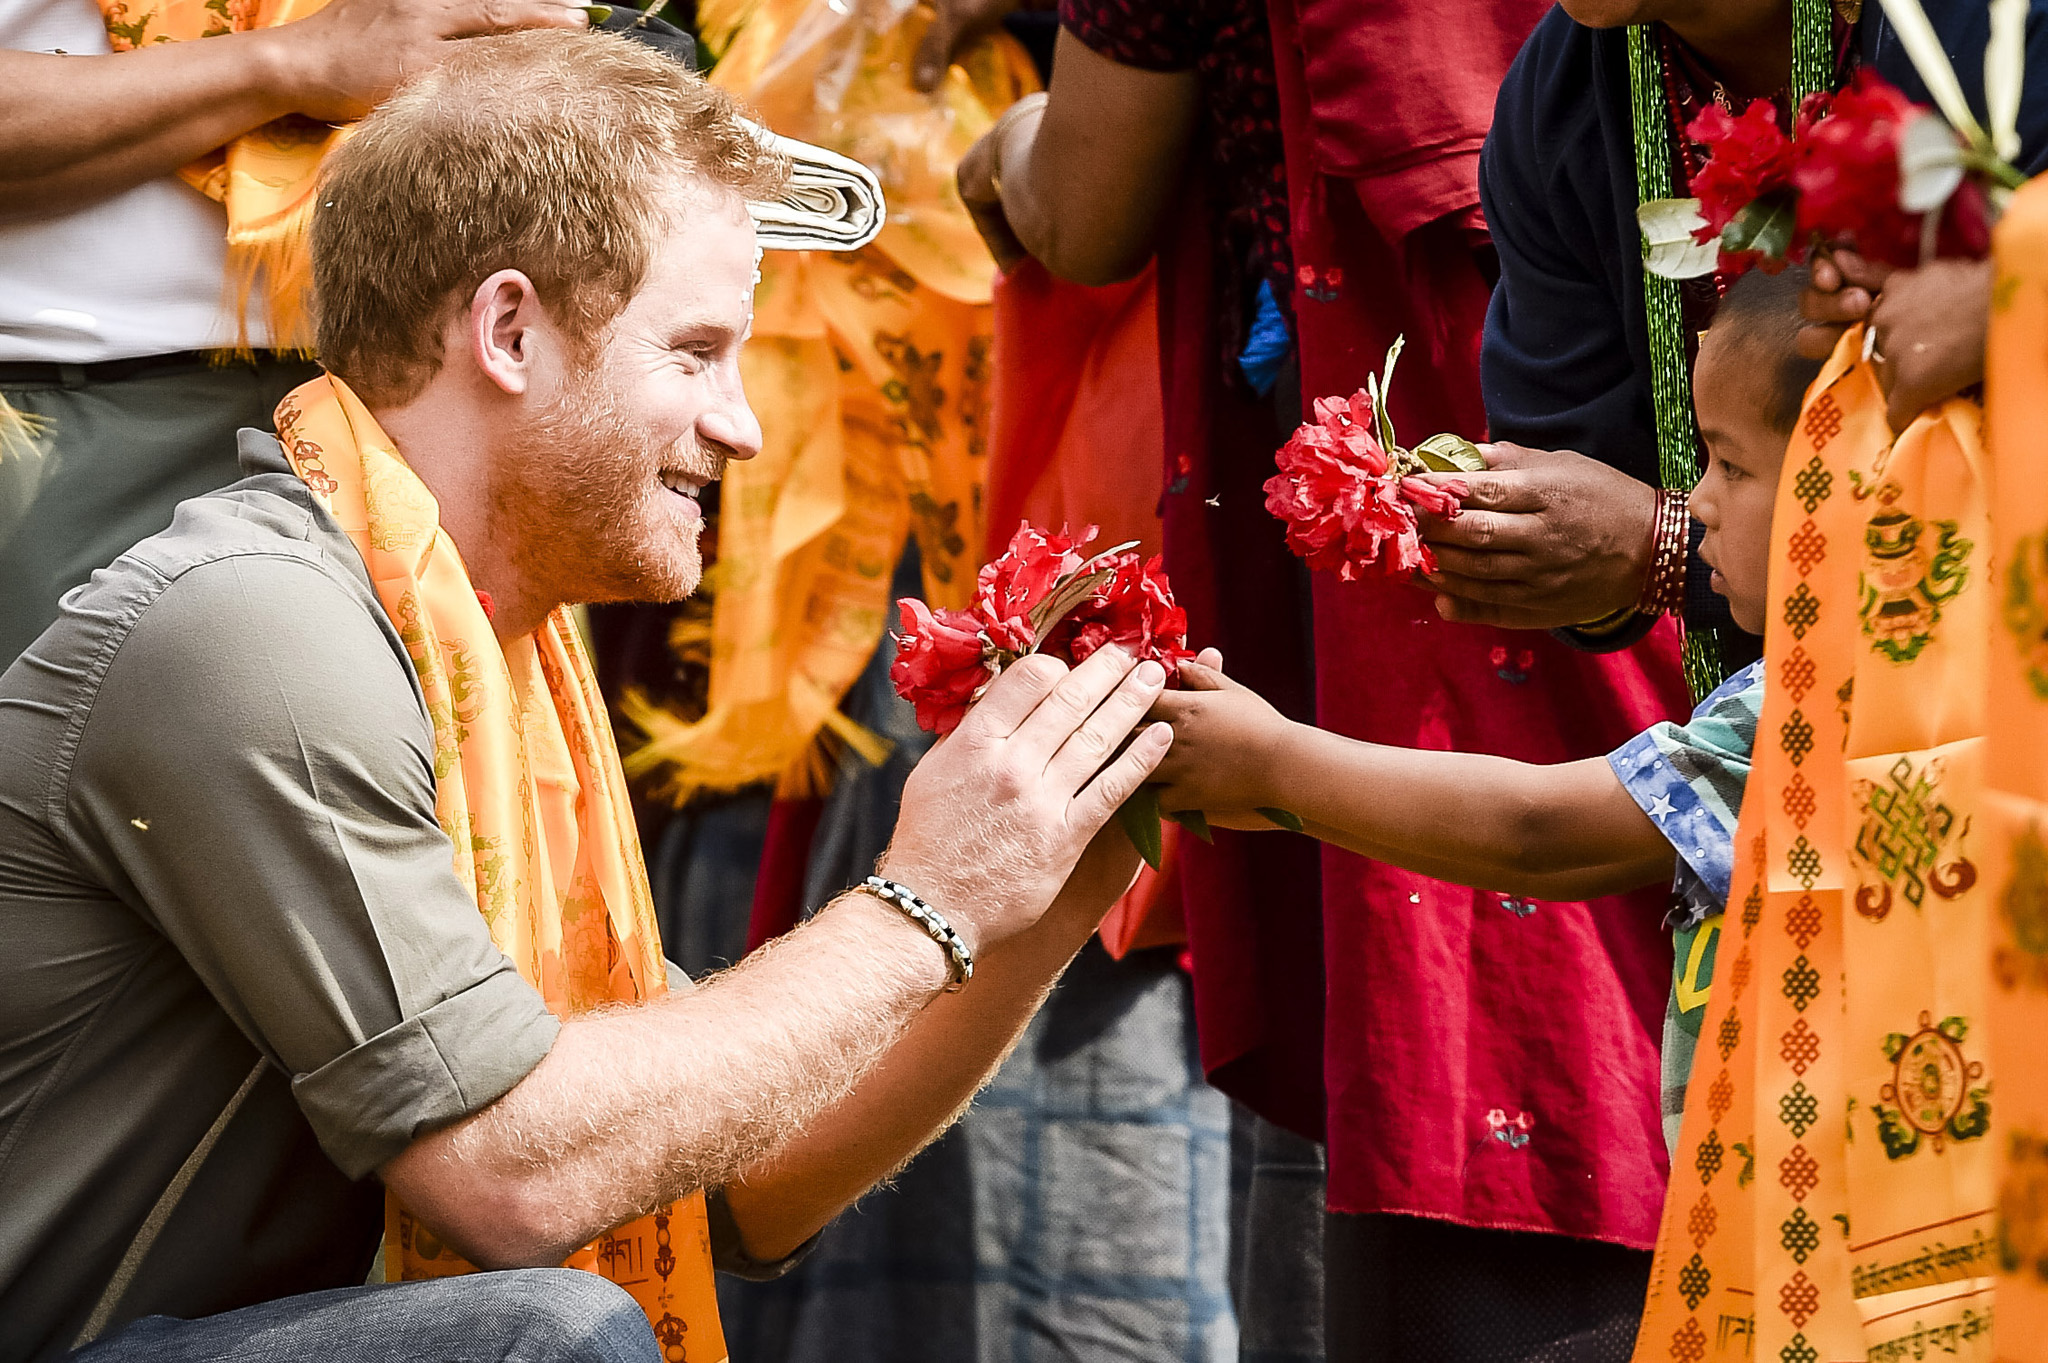 Prince Harry Visits Nepal - Day 3...Prince Harry kneels to receive flowers from children villagers from Bhir Kuna as the Prince arrives at the earthquake struck village in Nepal. PRESS ASSOCIATION Photo. Picture date: Monday March, 21, 2016. See PA story ROYAL Harry. Photo credit should read: Ben Birchall/PA Wire